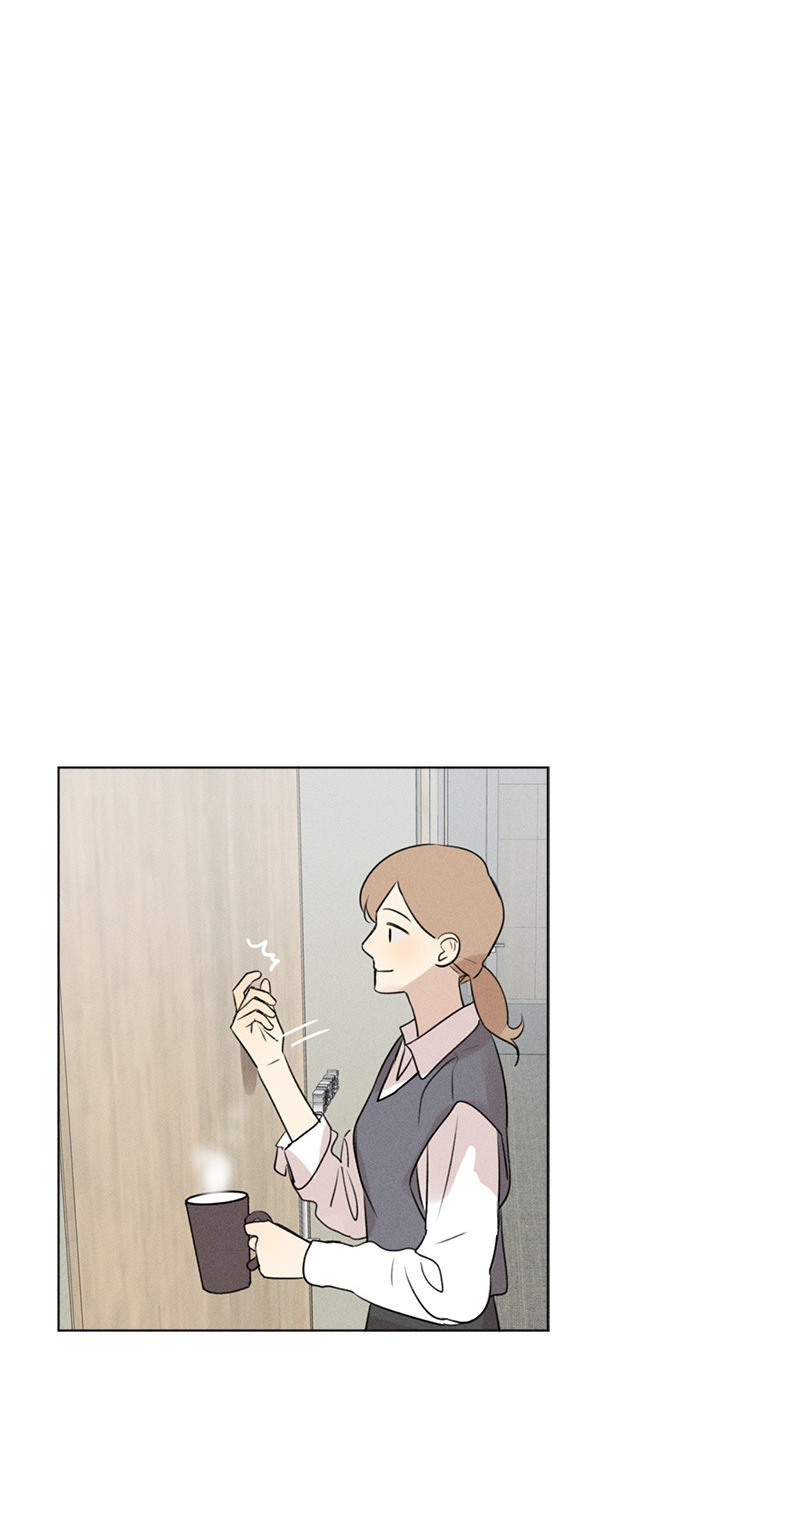 Here U are, Chapter 138: Side Story 8, image #28